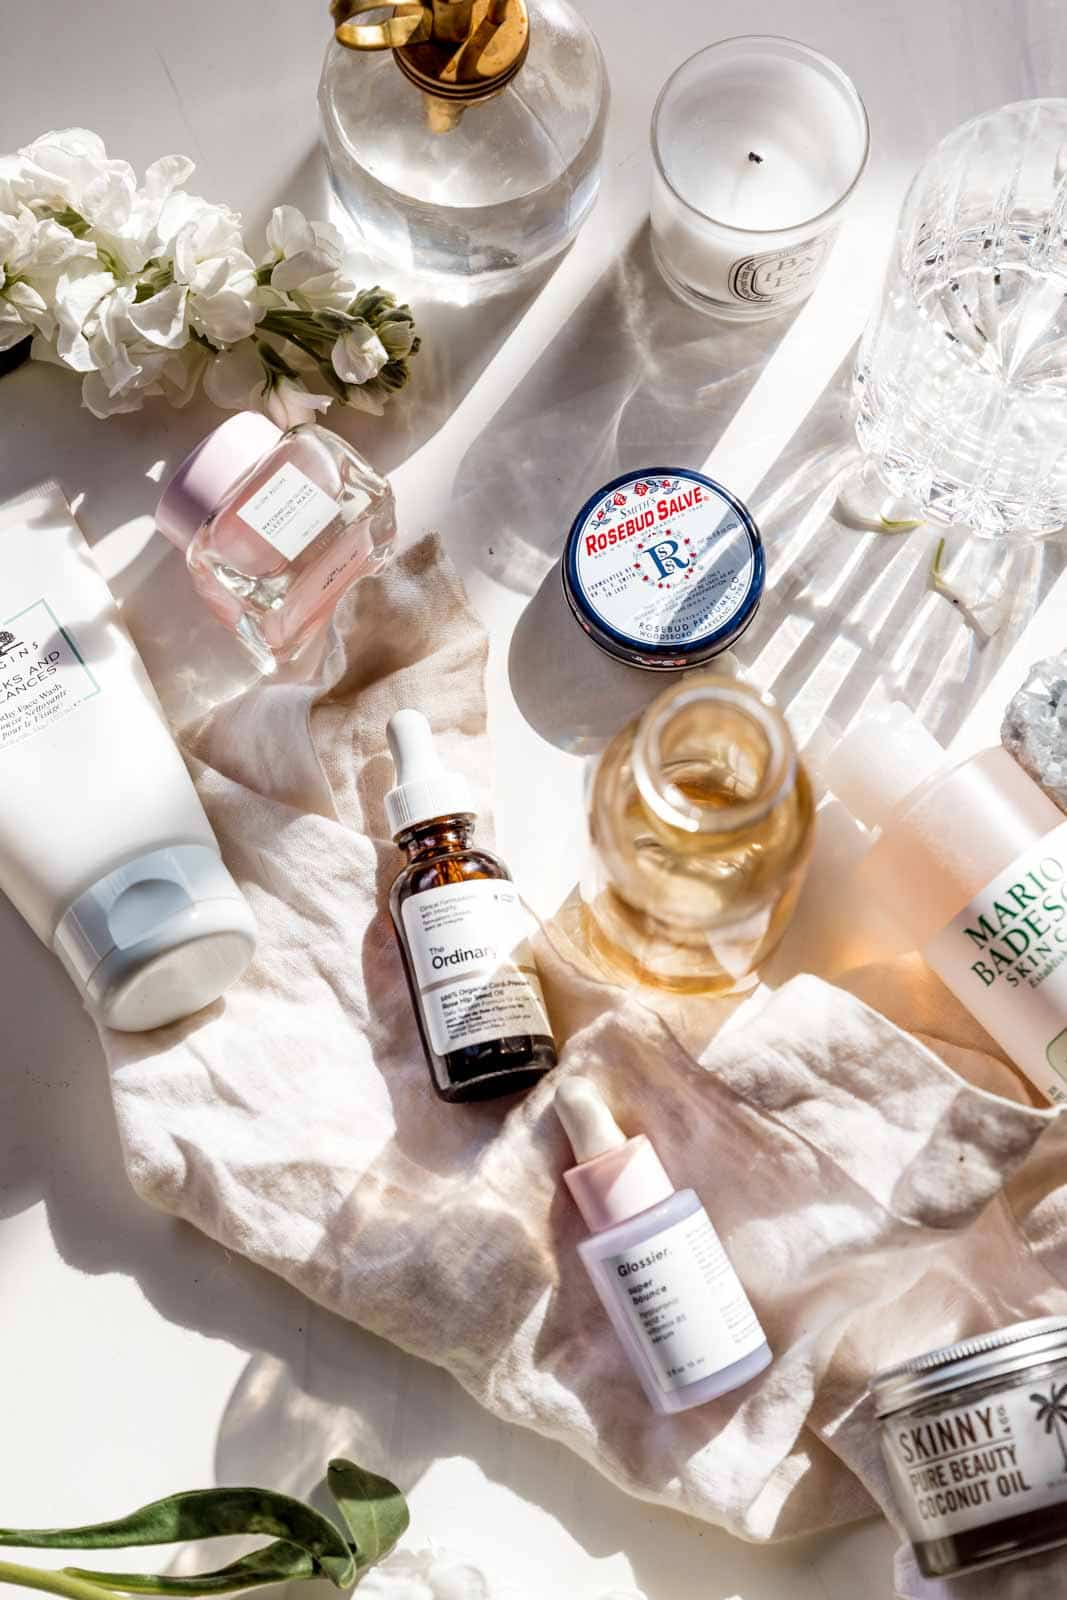 The Broke Girl's Guide to Skincare is filled with our top products to keep your skin looking and feeling great. Being broke doesn't mean you can't be fabulous